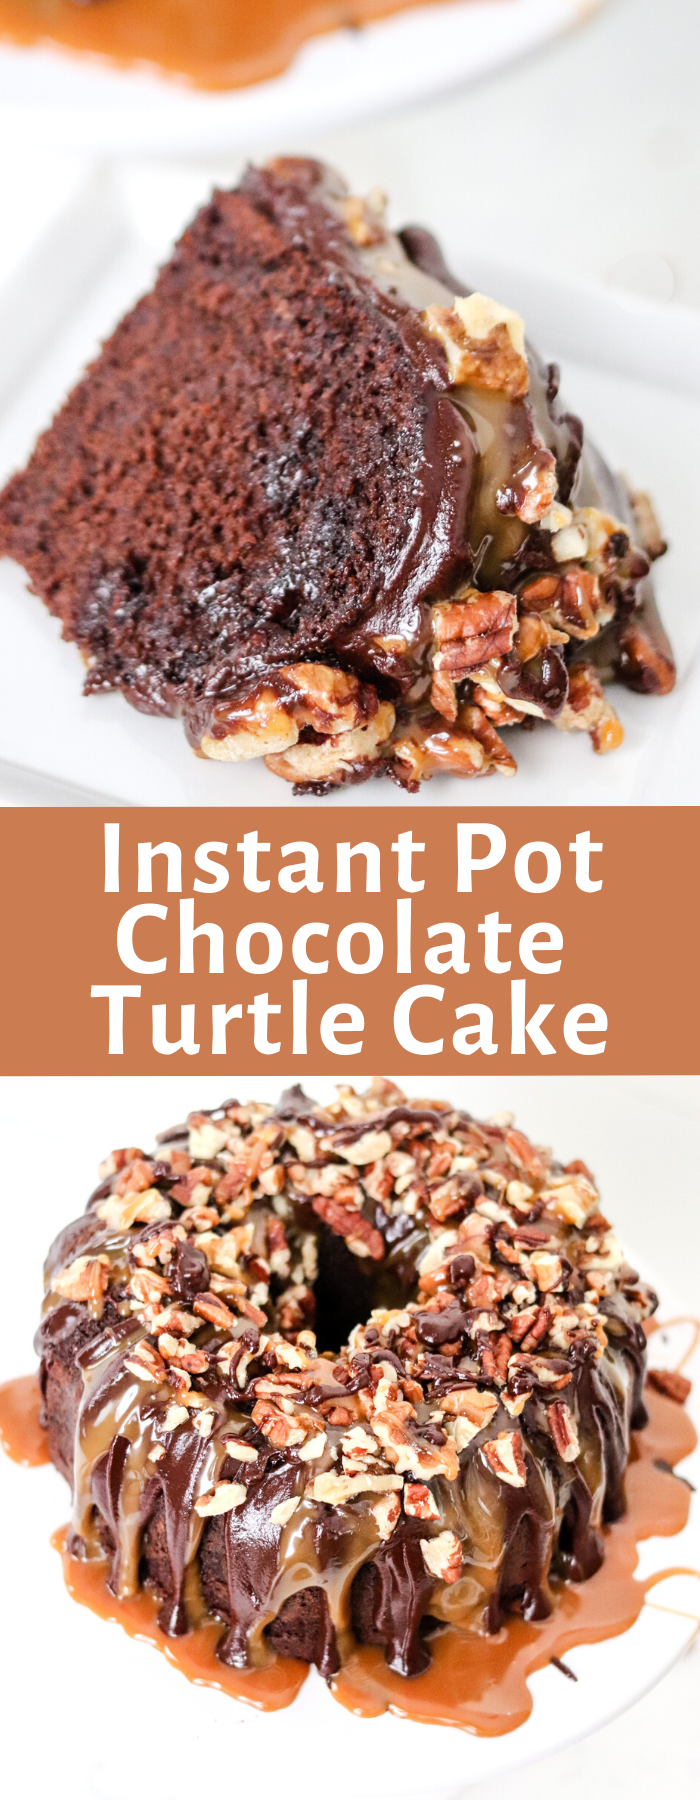 Making Instant Pot Chocolate Turtle Cake is easy, delicious, and frankly the best cake! It's moist and decadent, and done in less than 45 minutes!